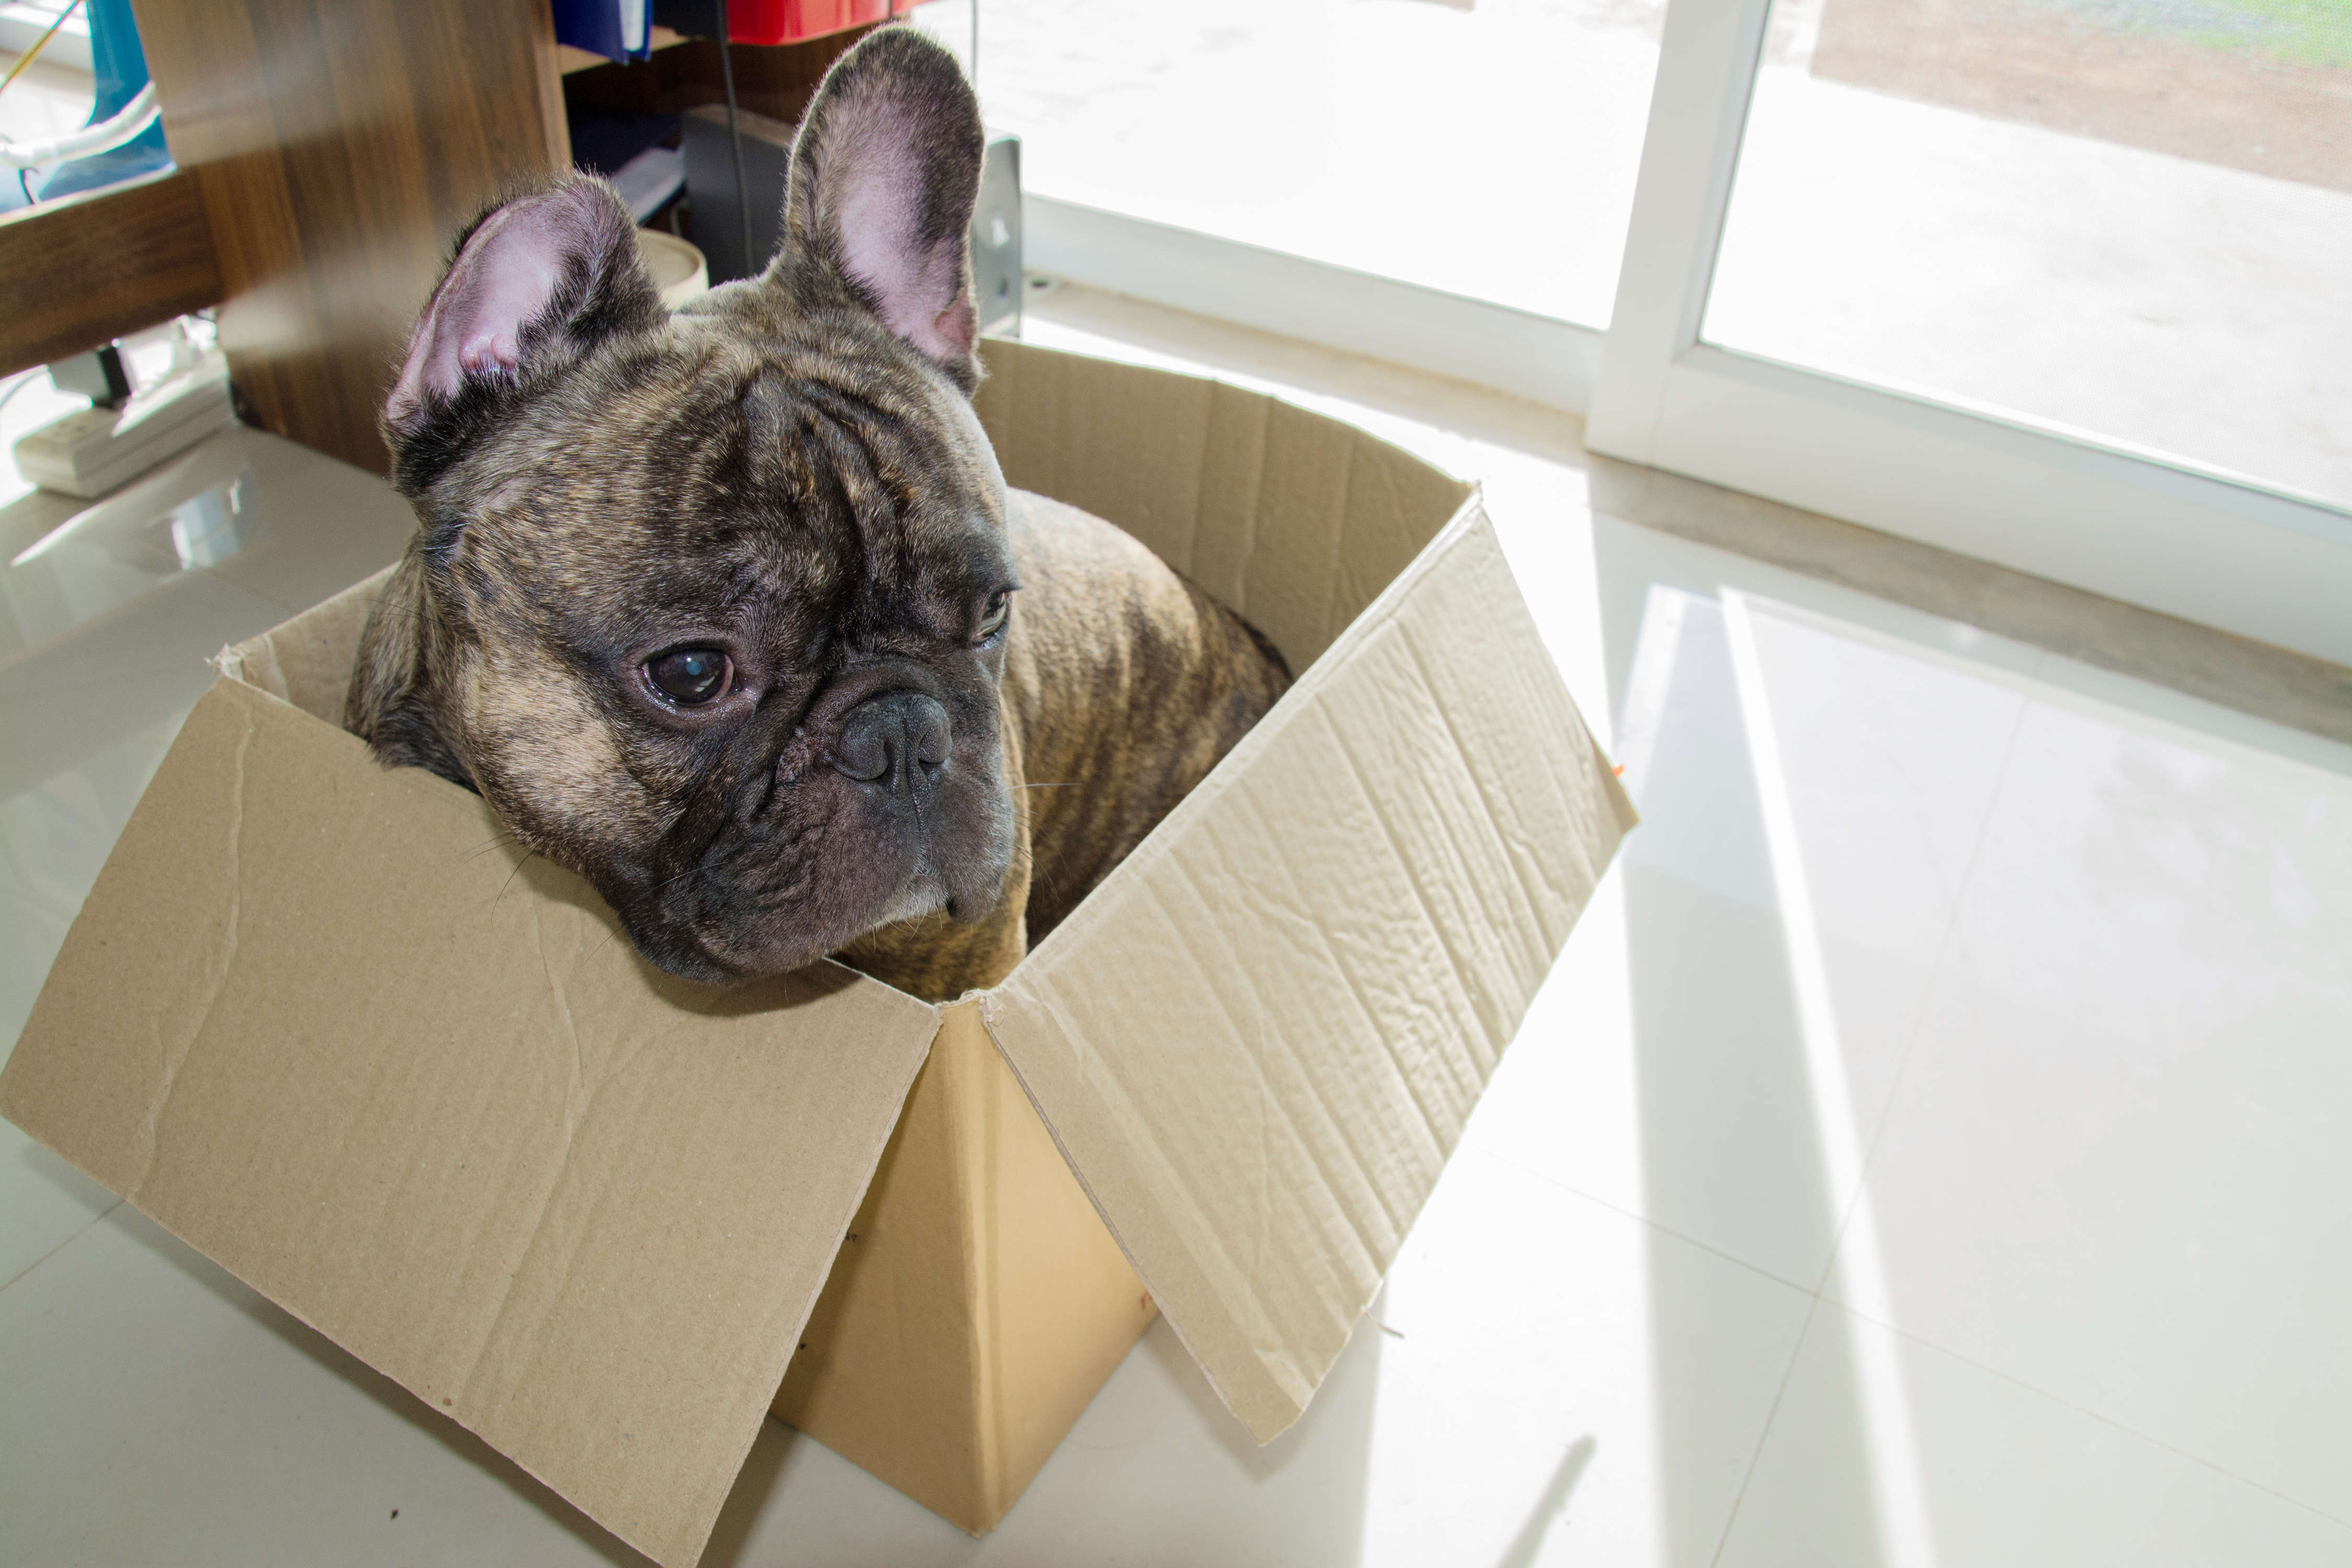 Dog Attacks on Postmen Responsible for a Third of Personal Injury Claims! 1